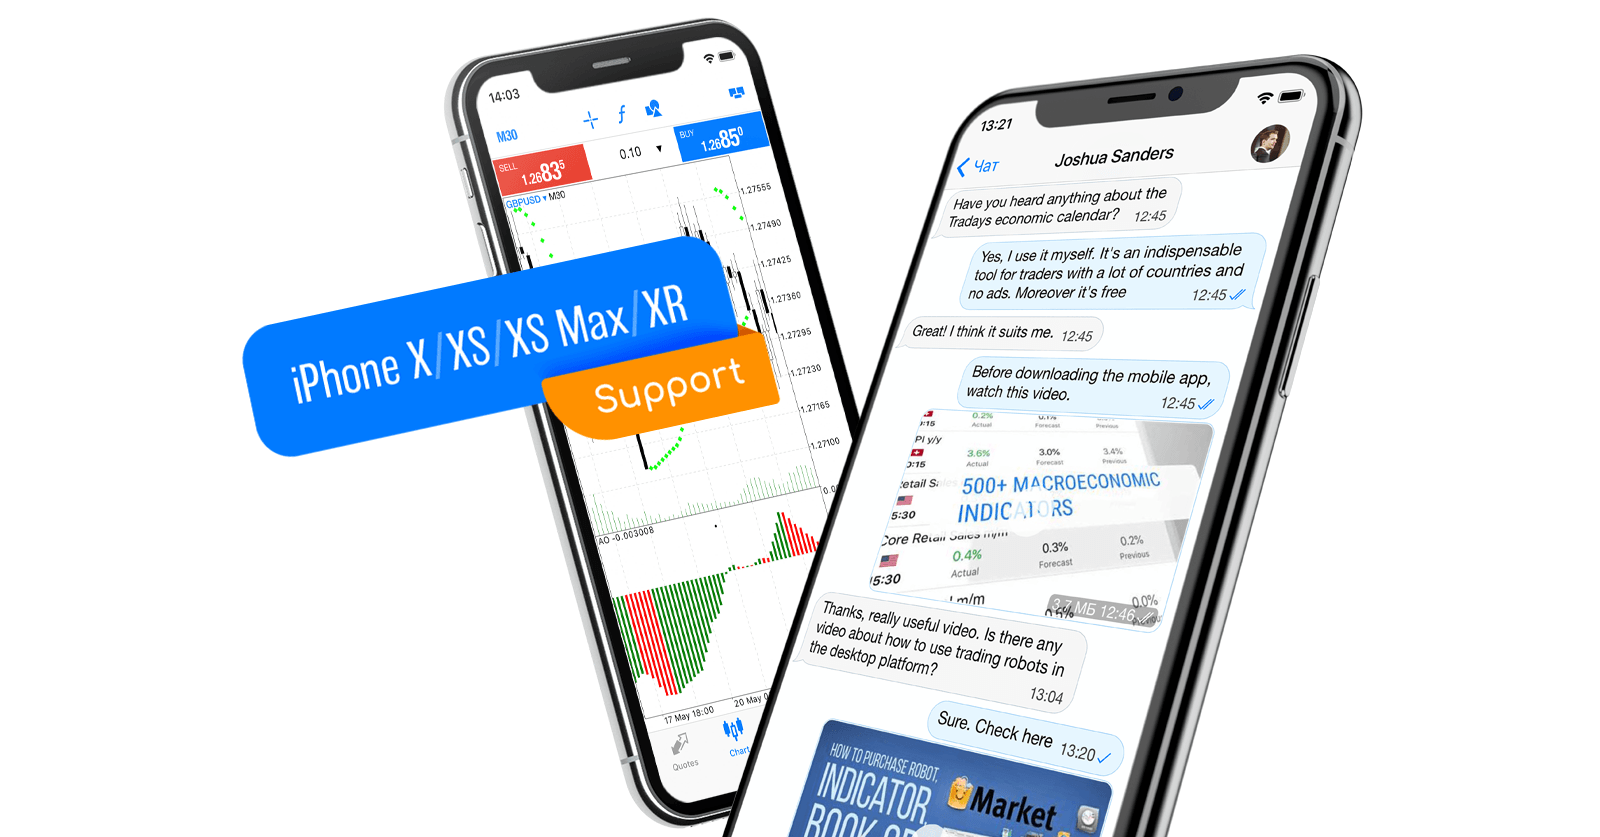 Native support for iPhone X/XS/XS Max/XR in MetaTrader 5 iOS